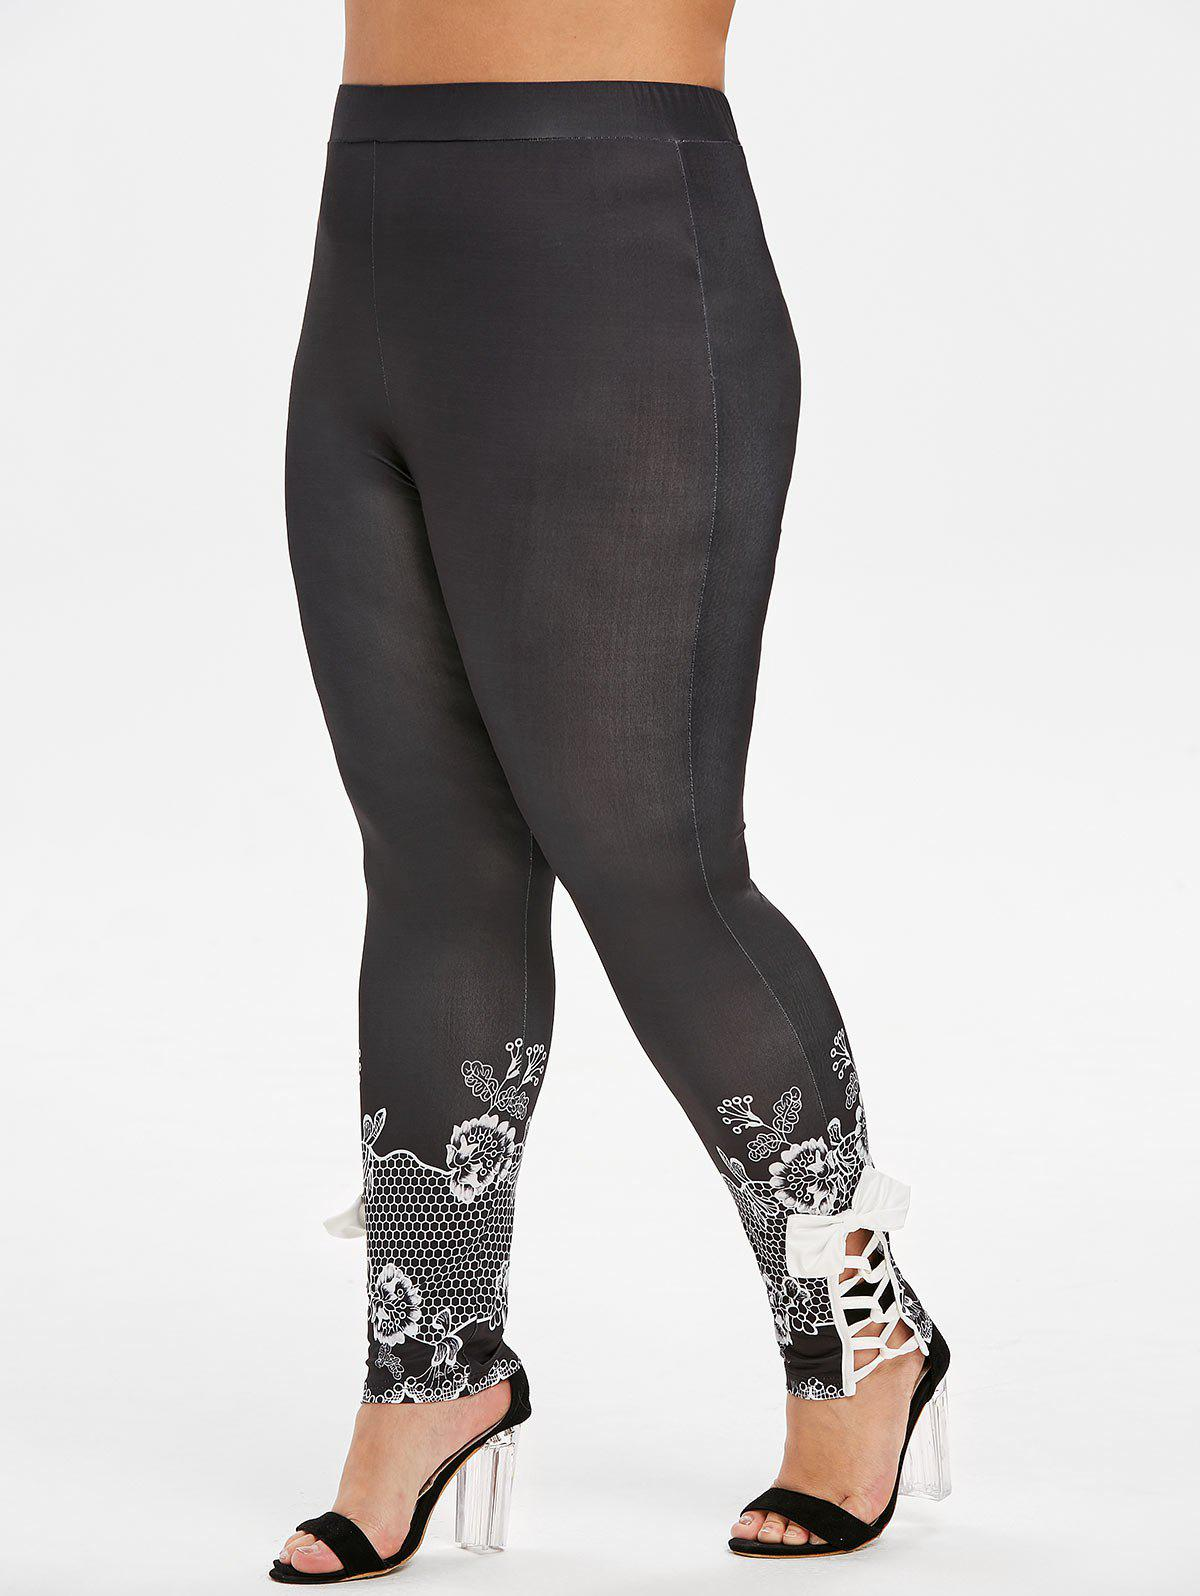 Plus Size bowknot Lattice Panel Leggings Imprimer Fleur - Noir L